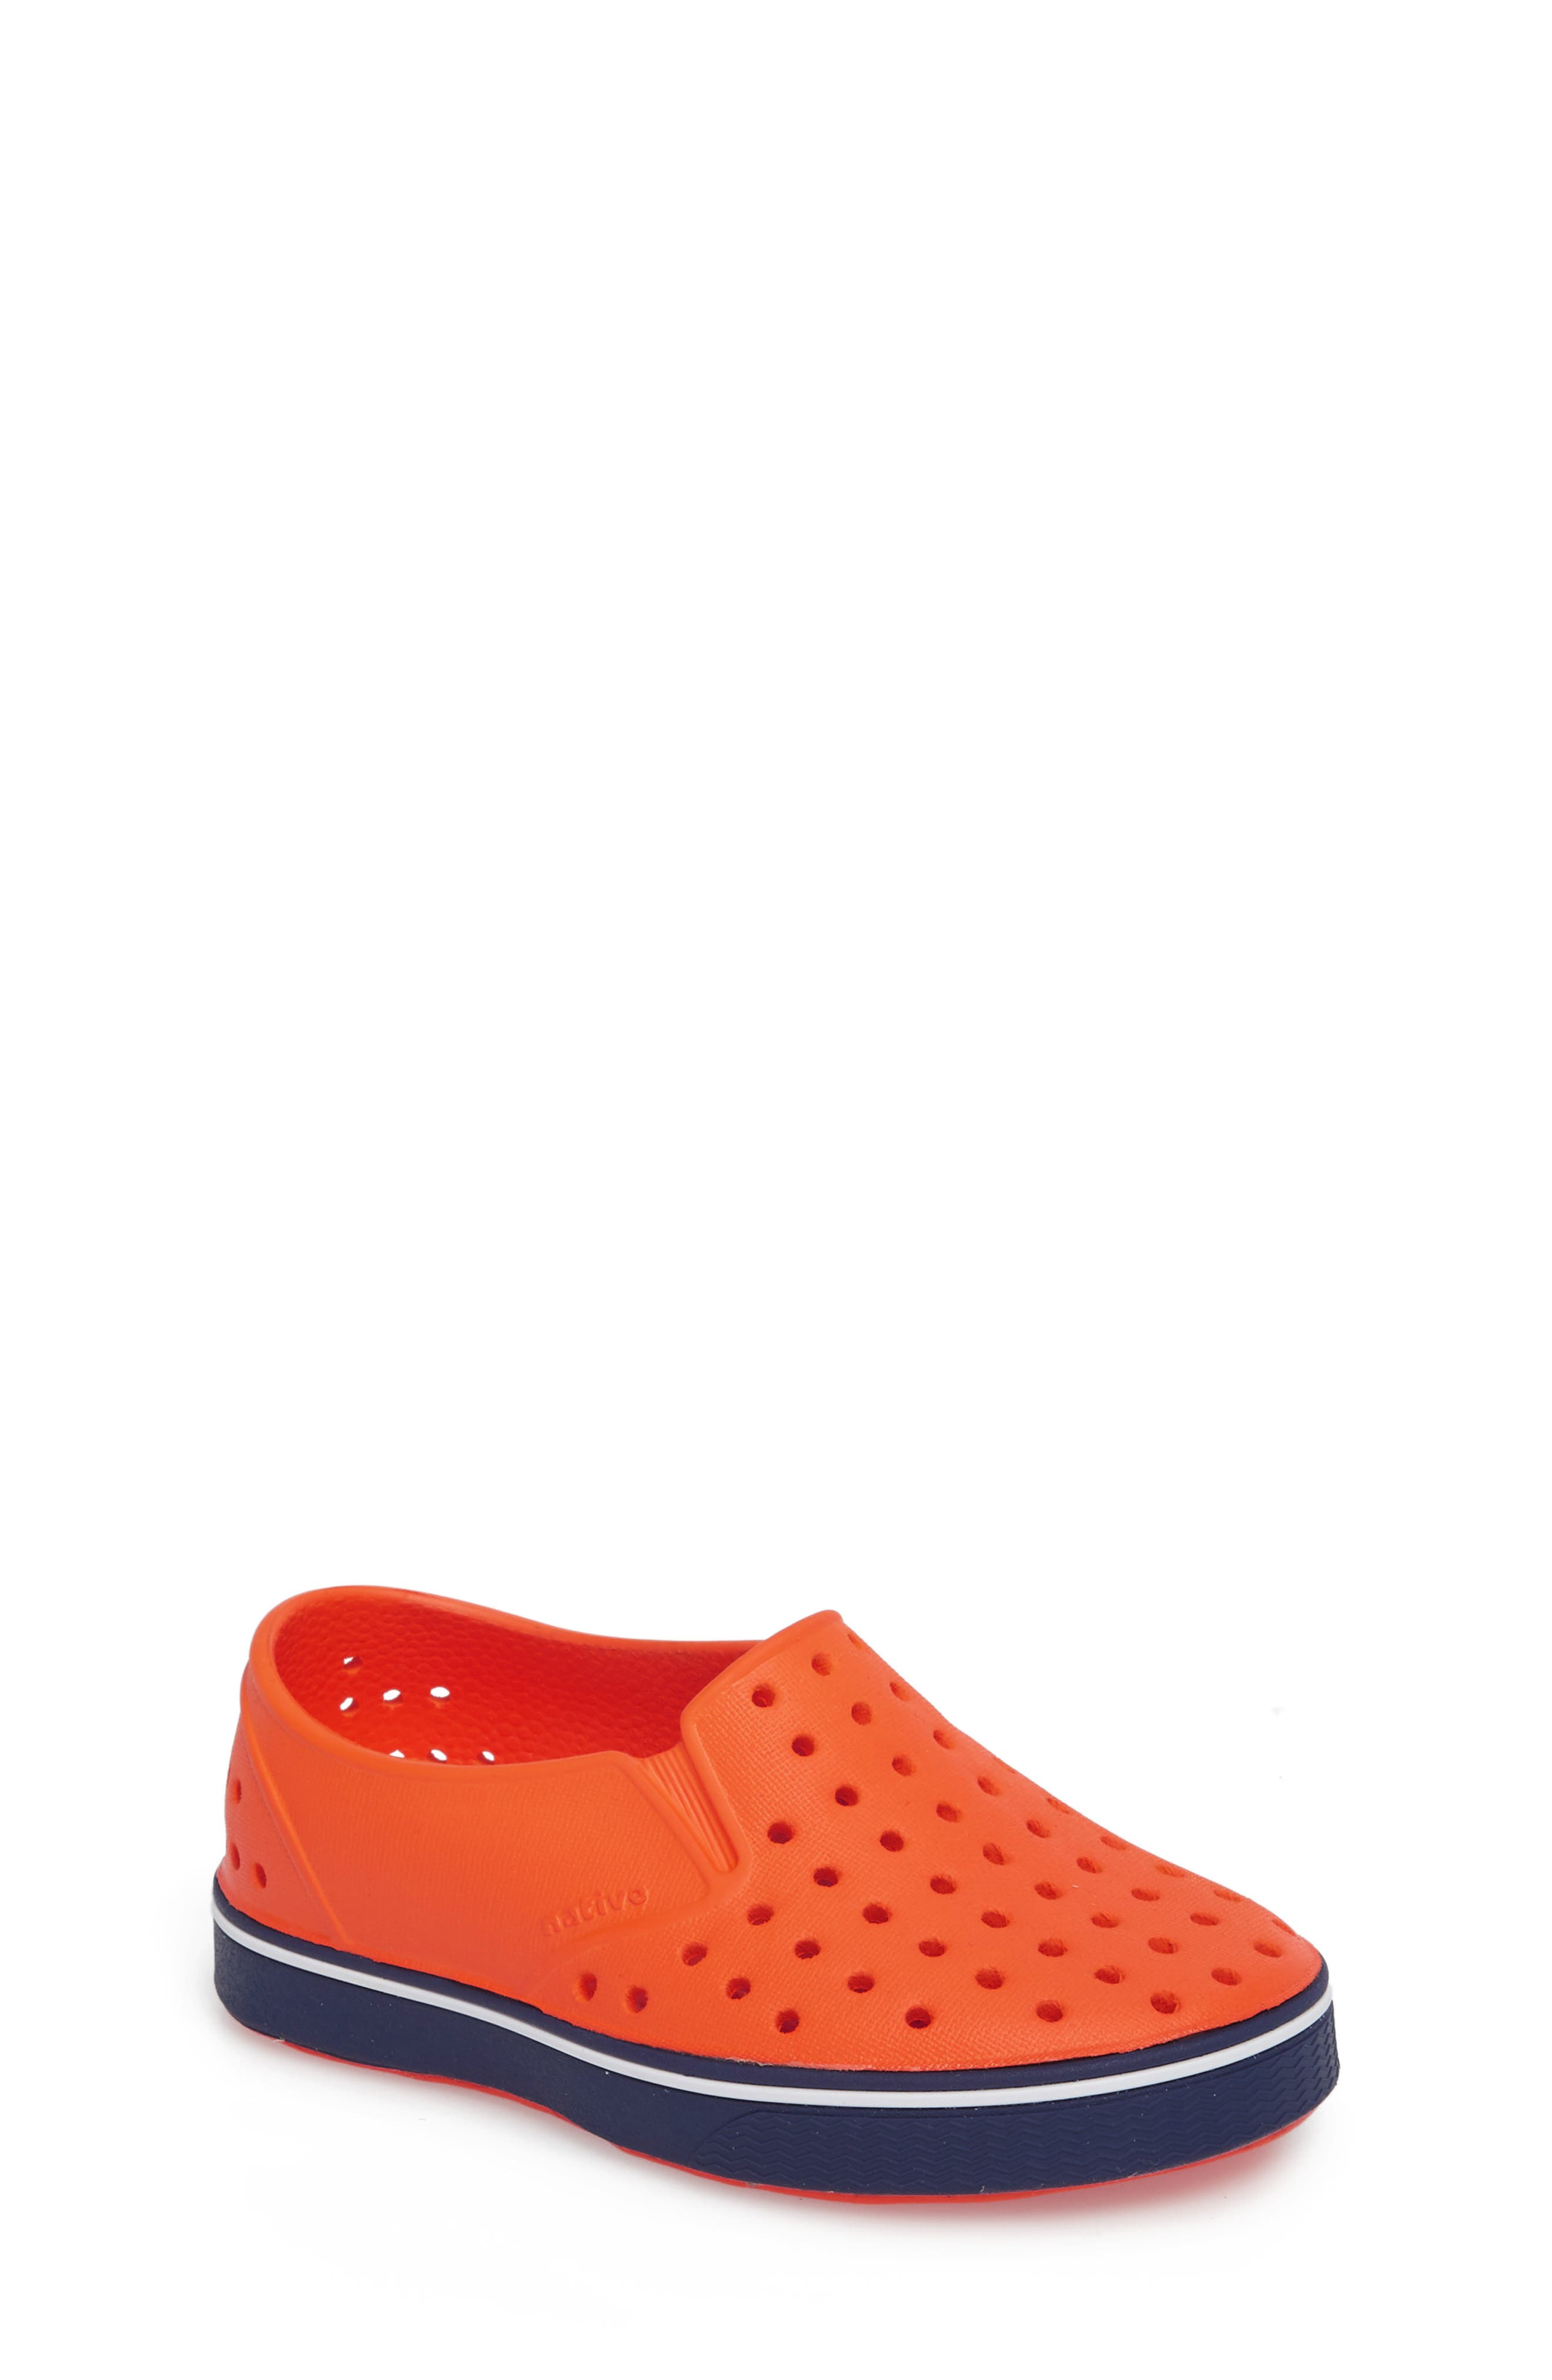 Miles Water Friendly Slip-On Sneaker,                             Main thumbnail 1, color,                             SUNSET ORANGE/ REGATTA BLUE